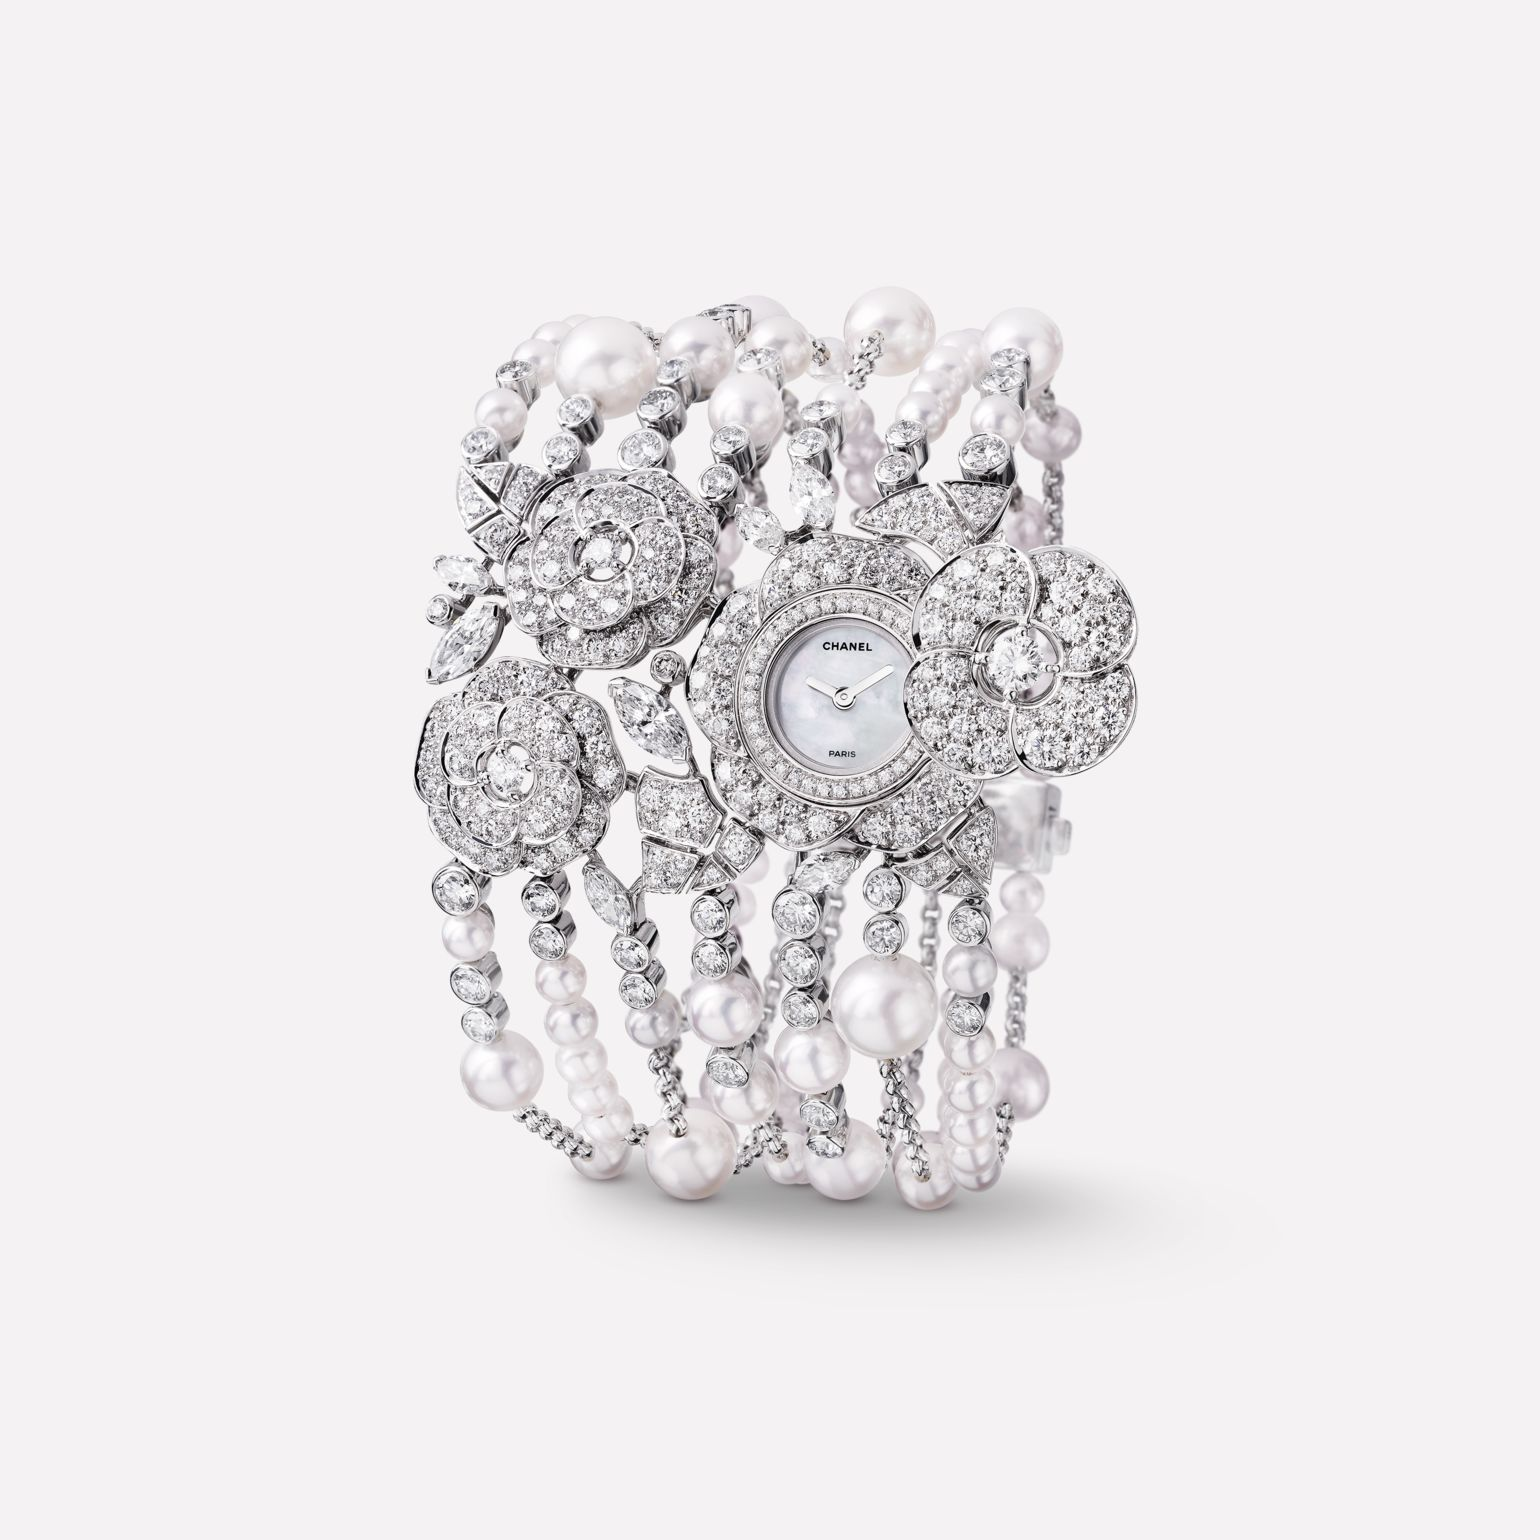 Camélia Jewellery Watch Secret watch with camellia bud motif in 18K white gold, diamonds and cultured pearls